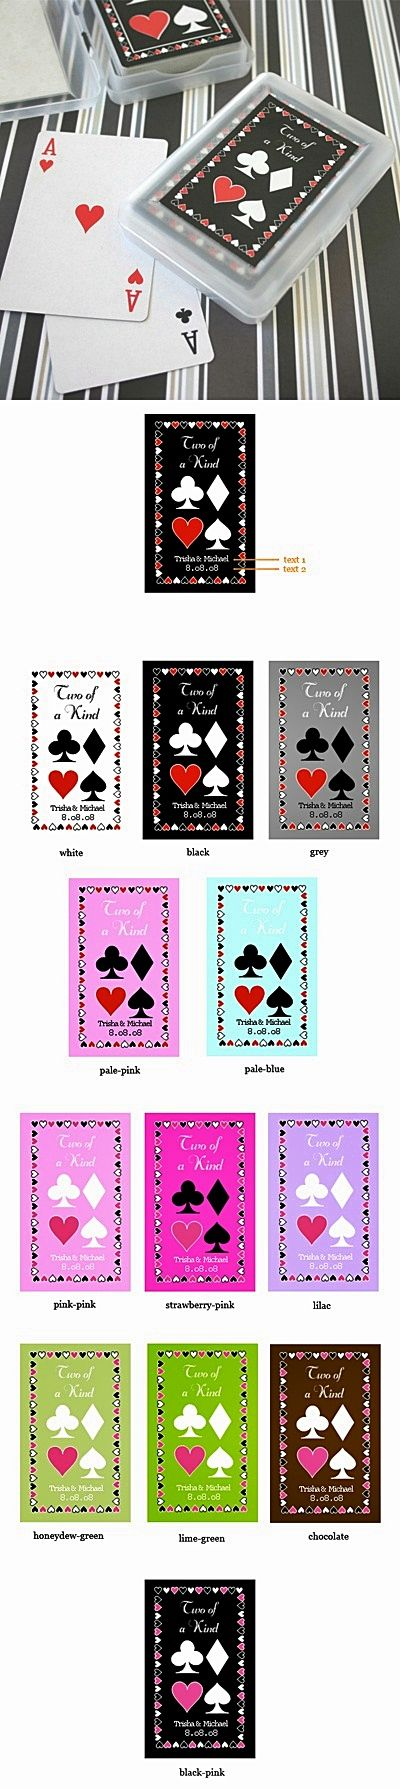 Playful Deck of Playing Cards with Personalized Case